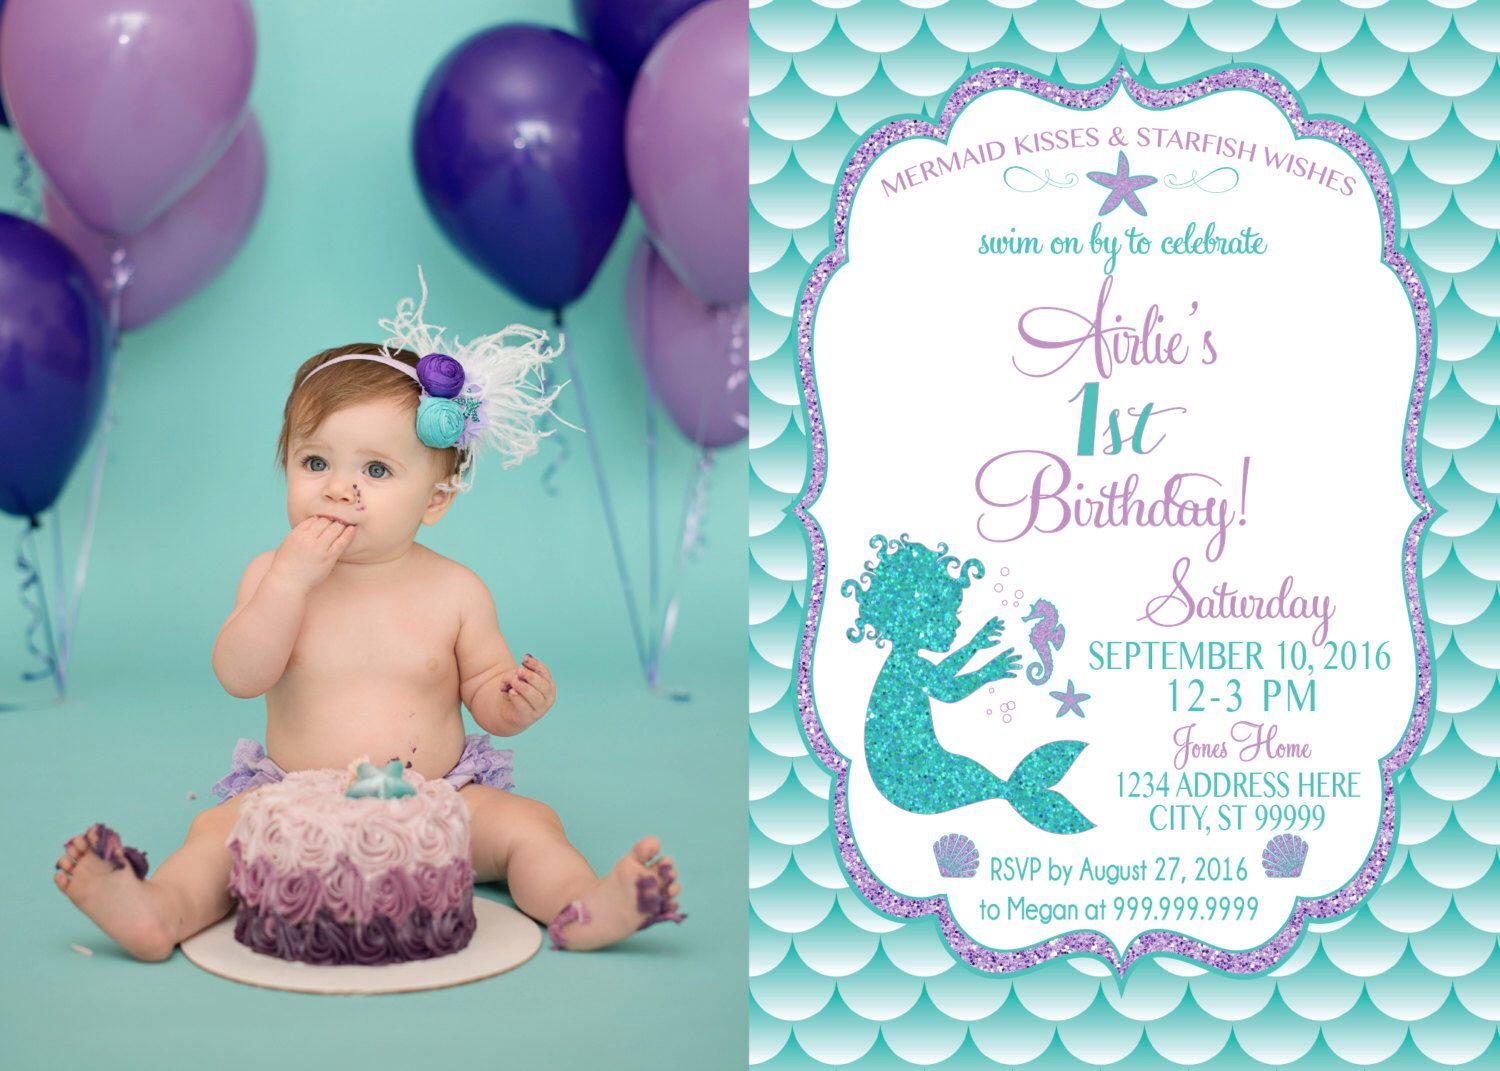 Best Girl Birthday Party Invitation Images On Pinterest - 1st birthday invitations girl purple